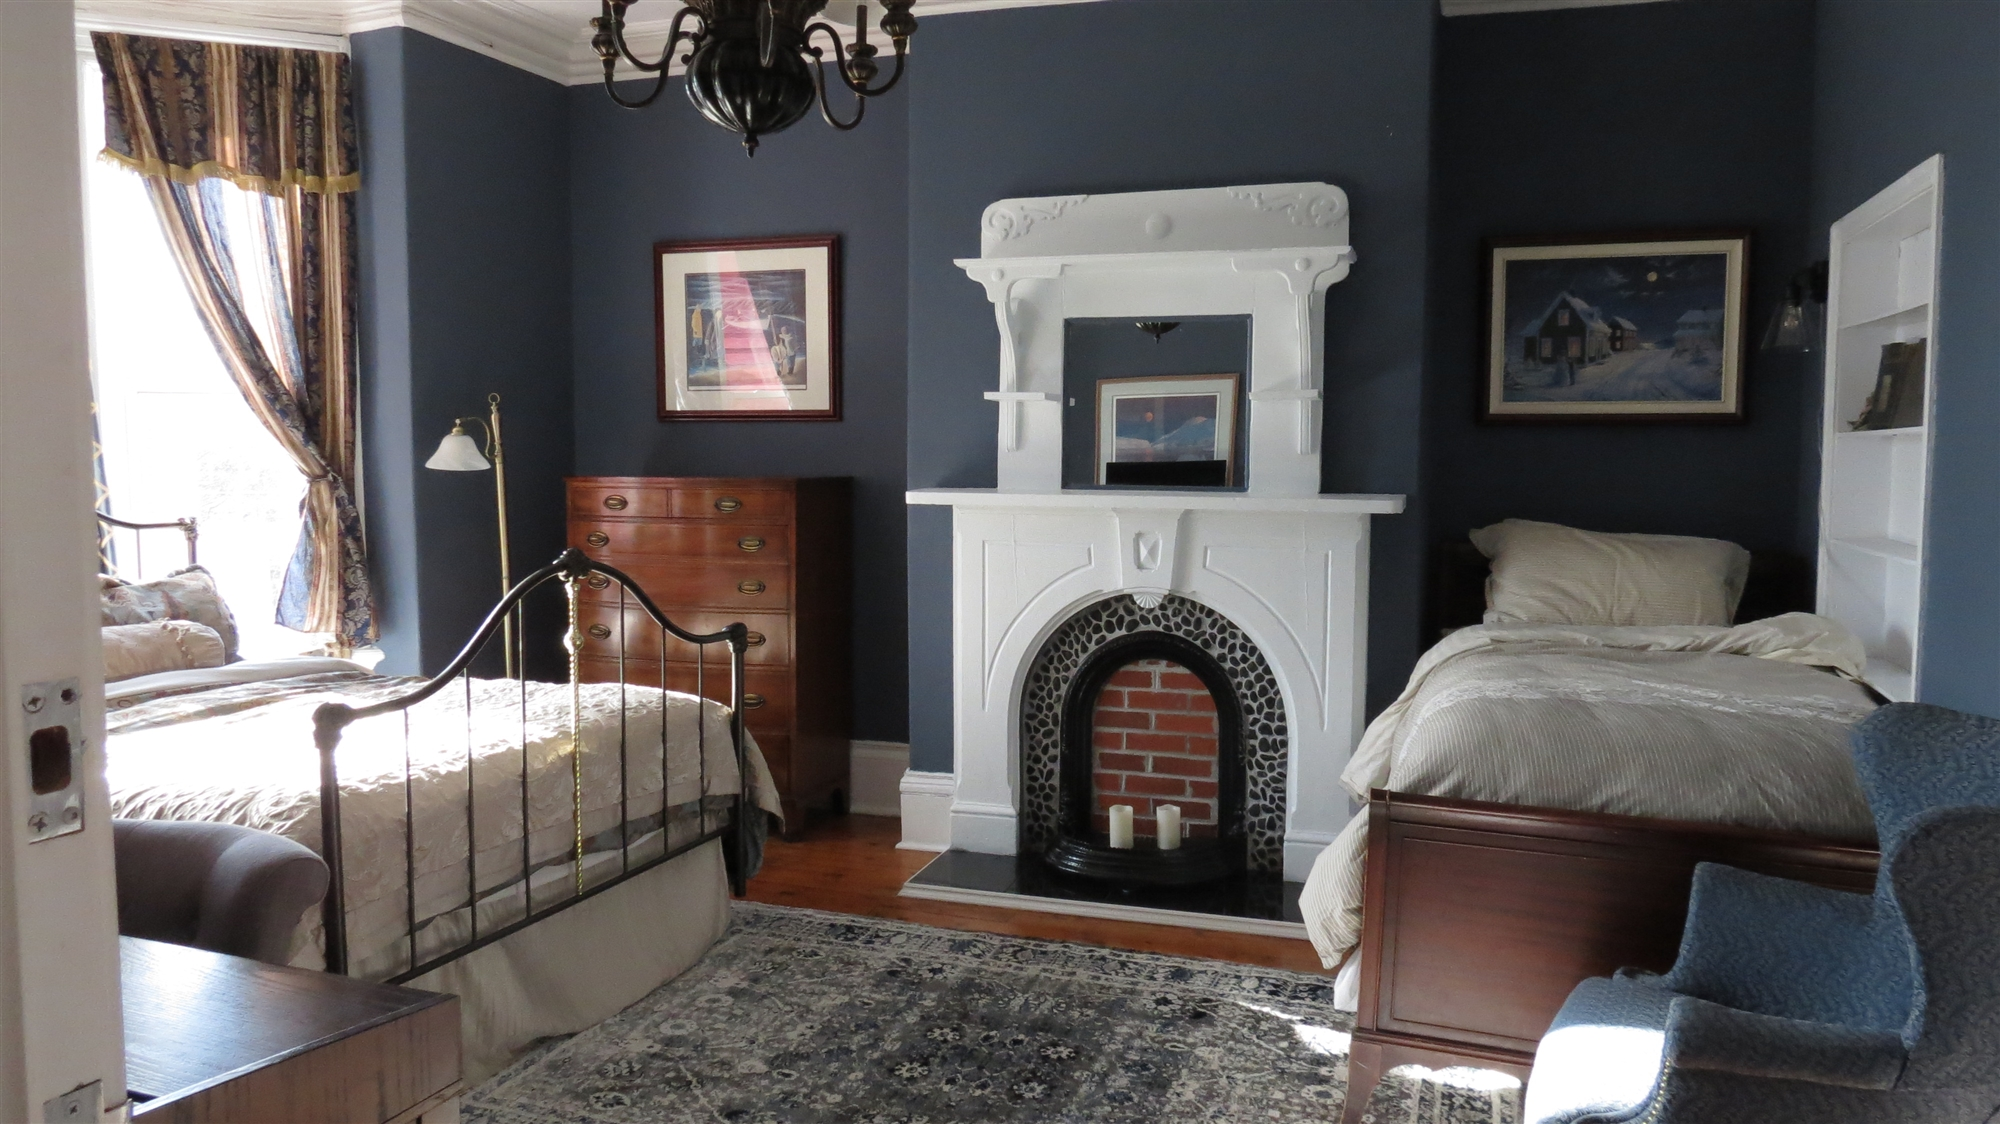 Image for 02) Lushes Bight- Queen /single bed ensuite. Second fl